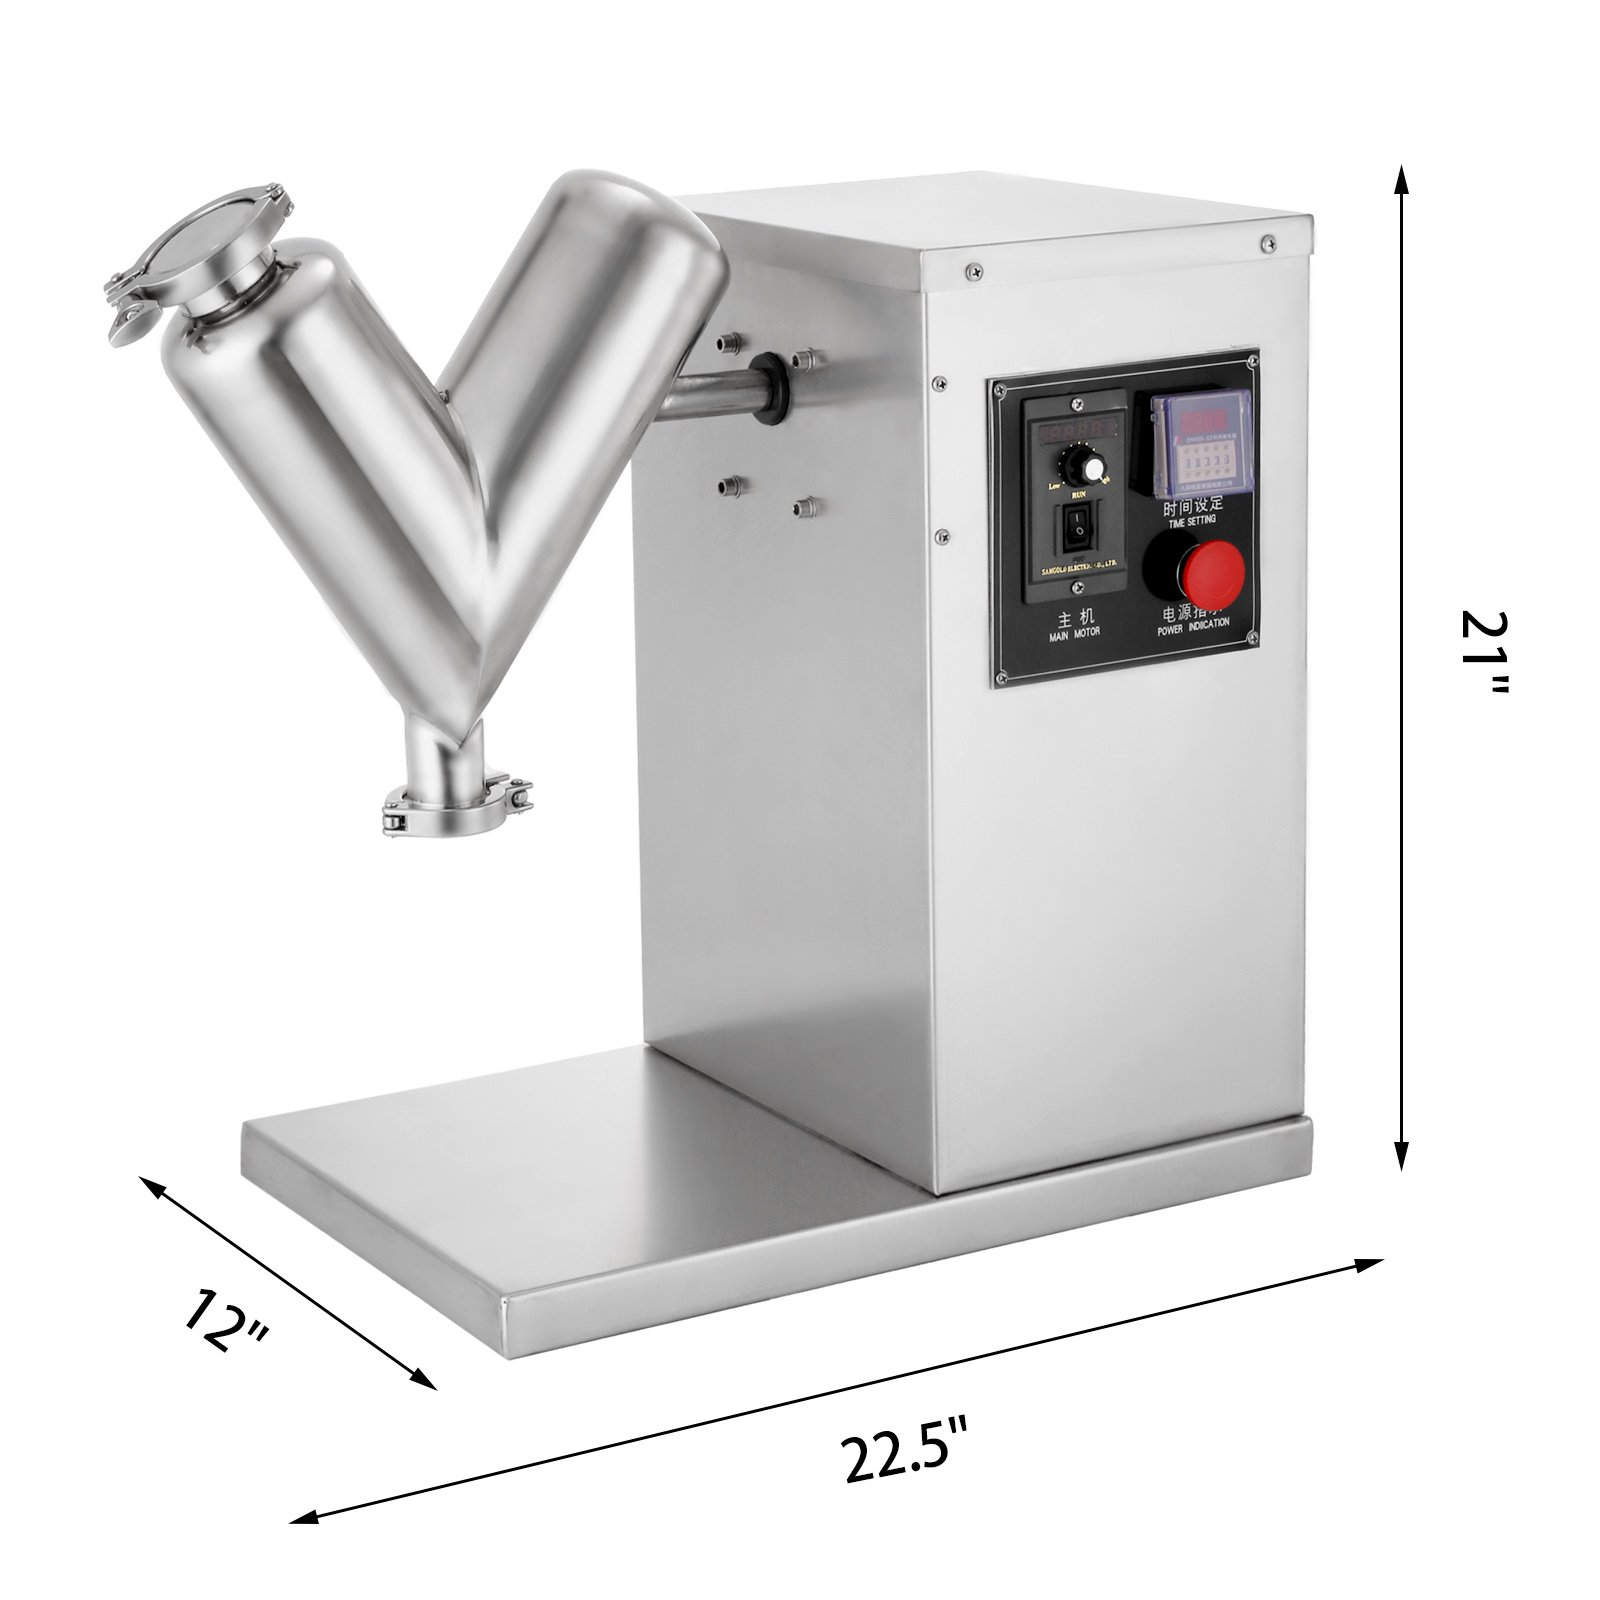 Happybuy 3L Powder Mixer Machine VH-2 Pharmaceutical Powder Mixer Stainless Steel Dry Powder Mixer V-type Powder Mixer Adjustable Laboratory Mixer Hig(3L) by Happybuy (Image #2)